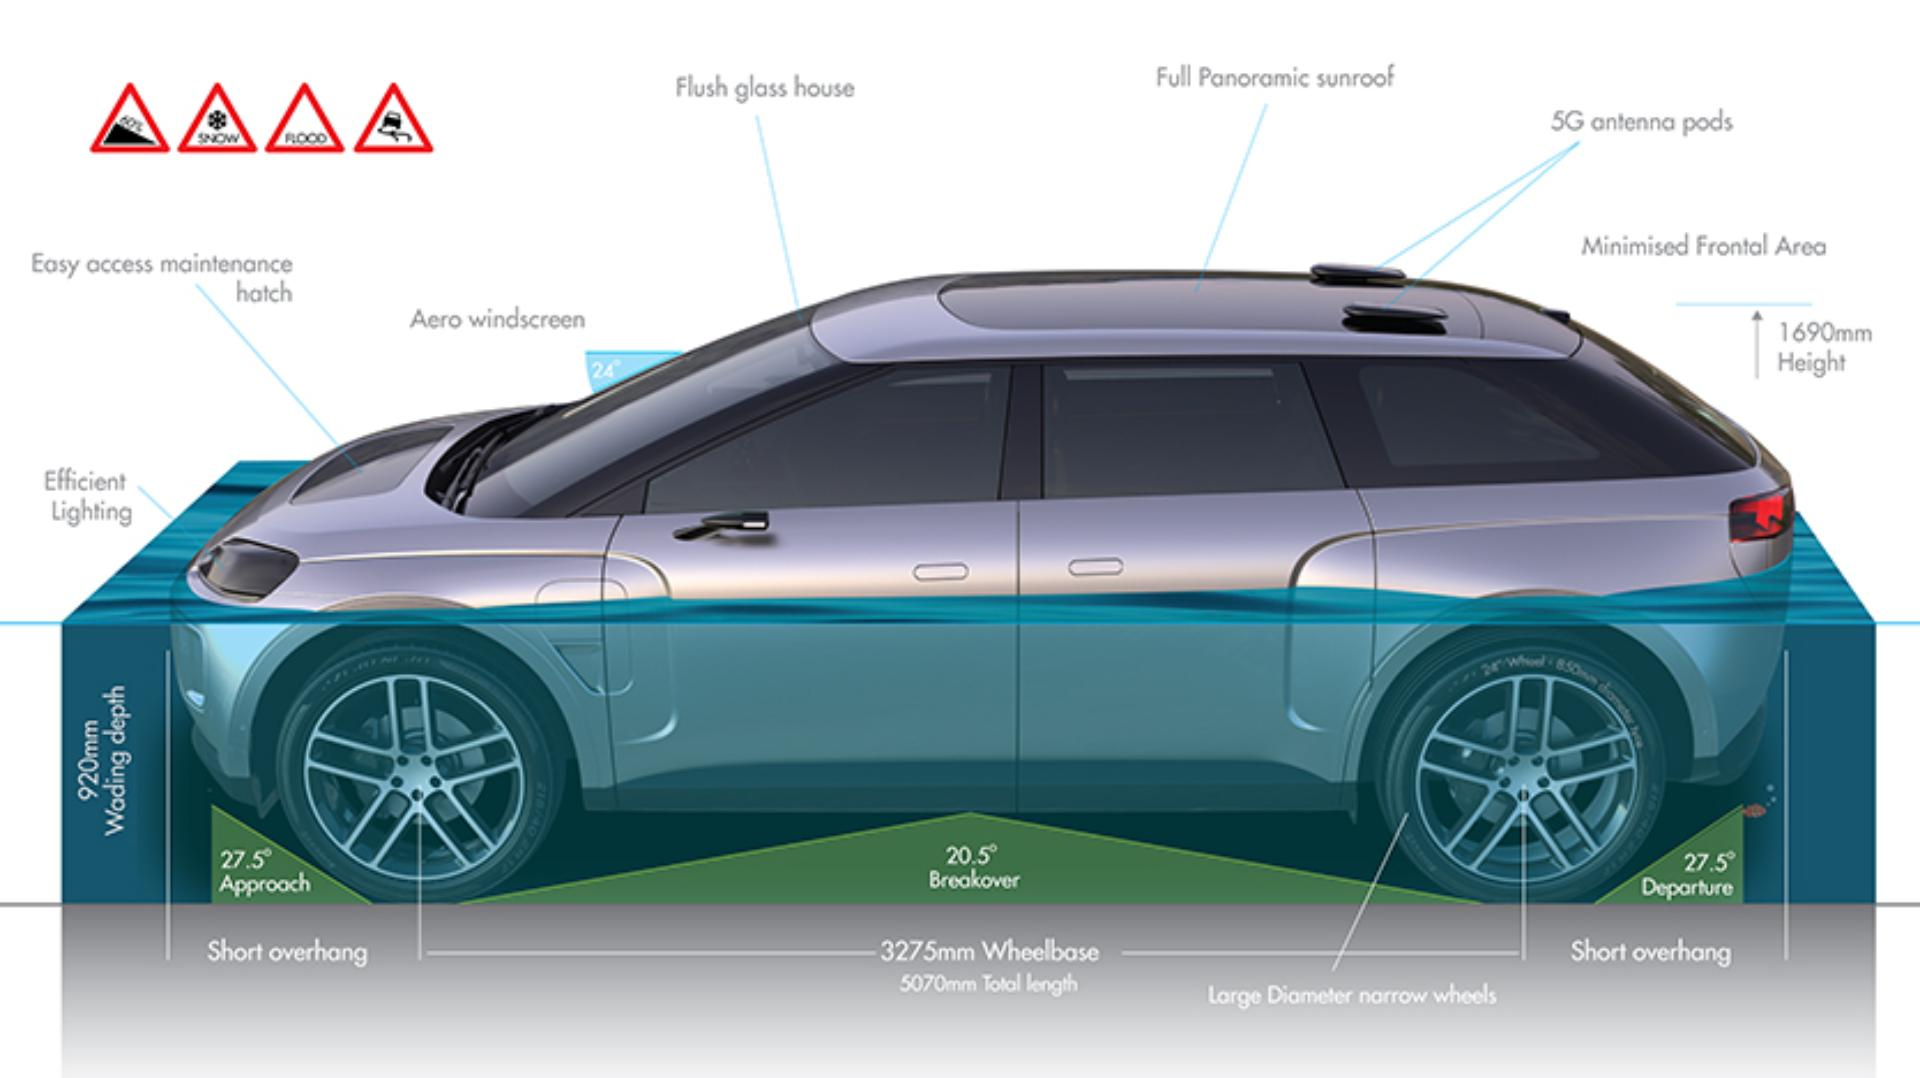 Side view of the car complete with notes and annotations